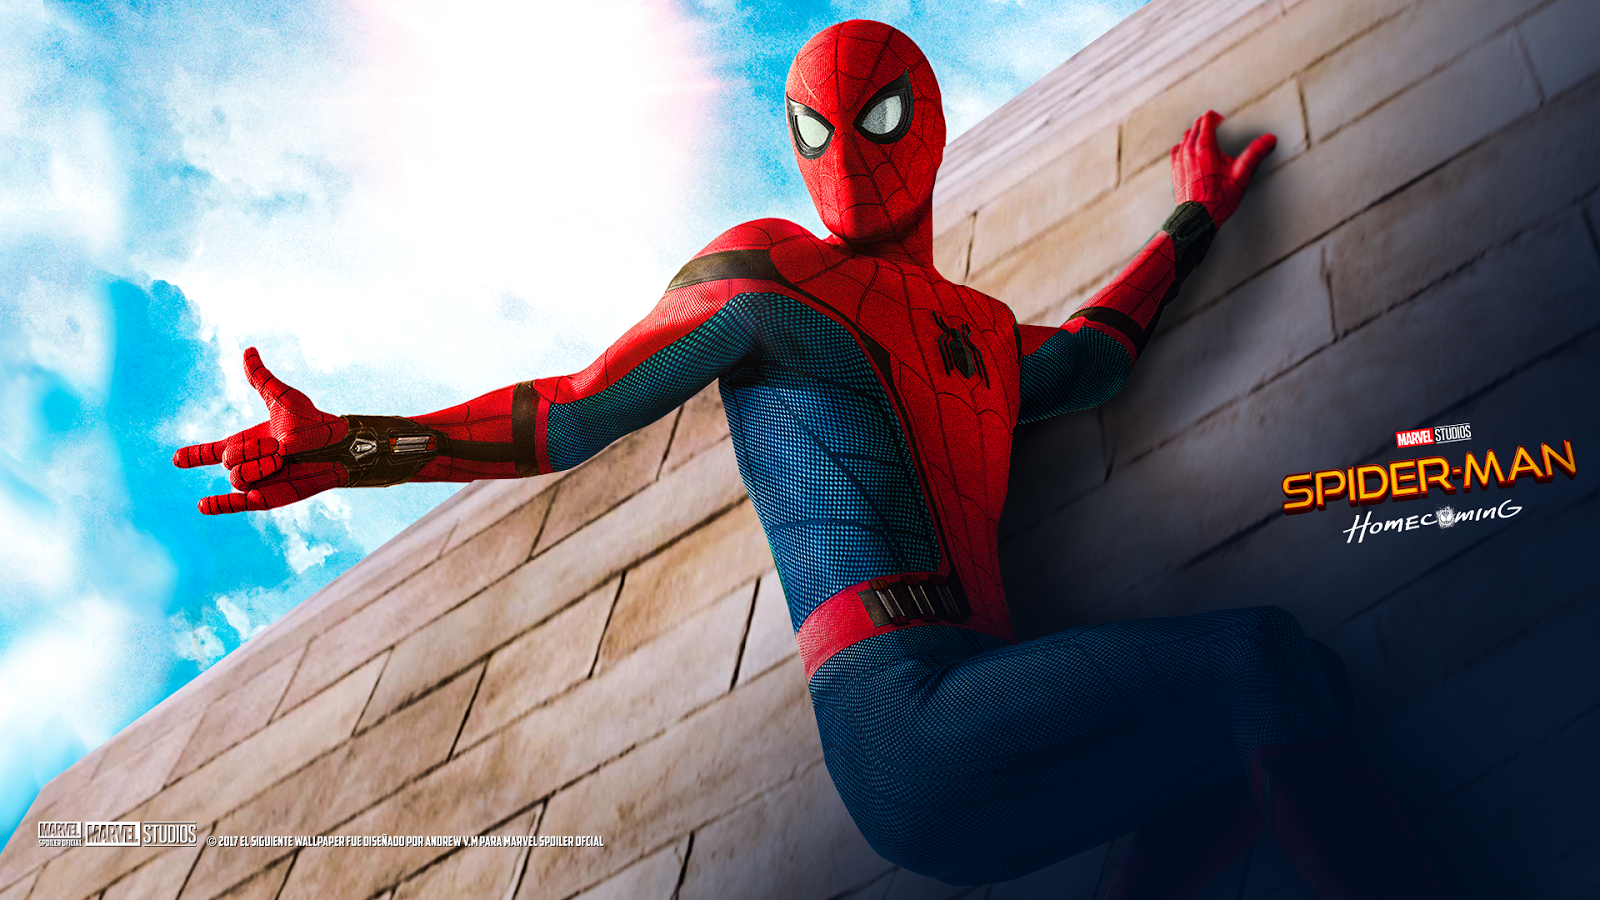 Spider-Man: Homecoming Wallpaper And Background Image